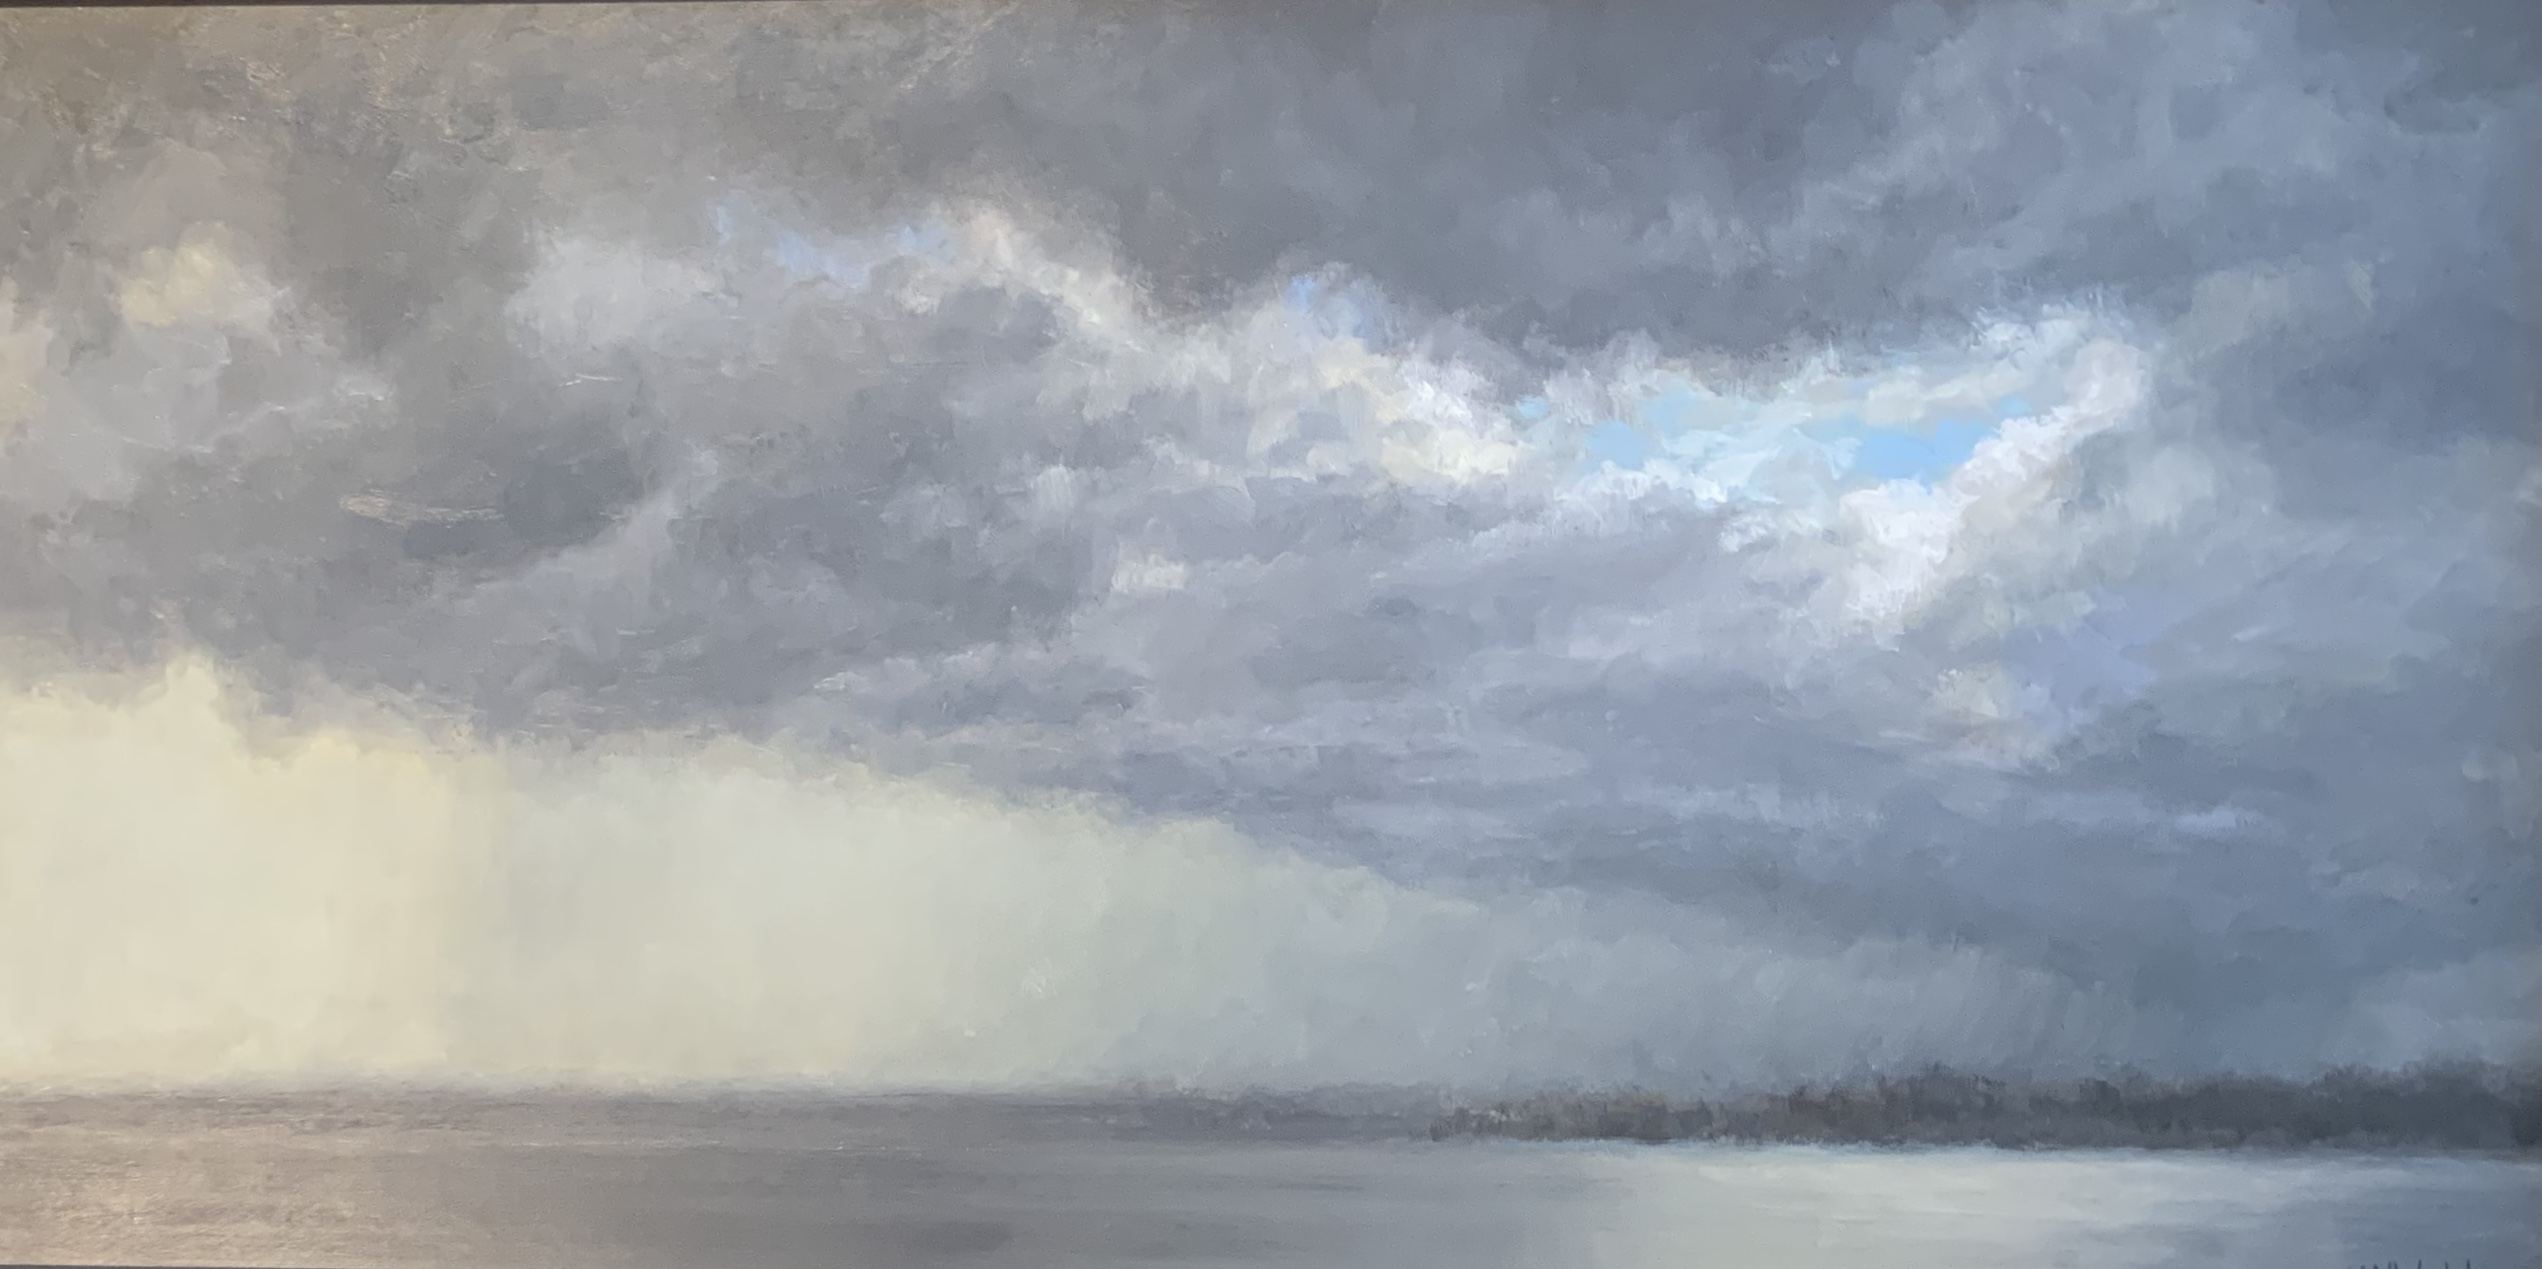 Squall Line-Walsh oil 12x24 $1900 sold